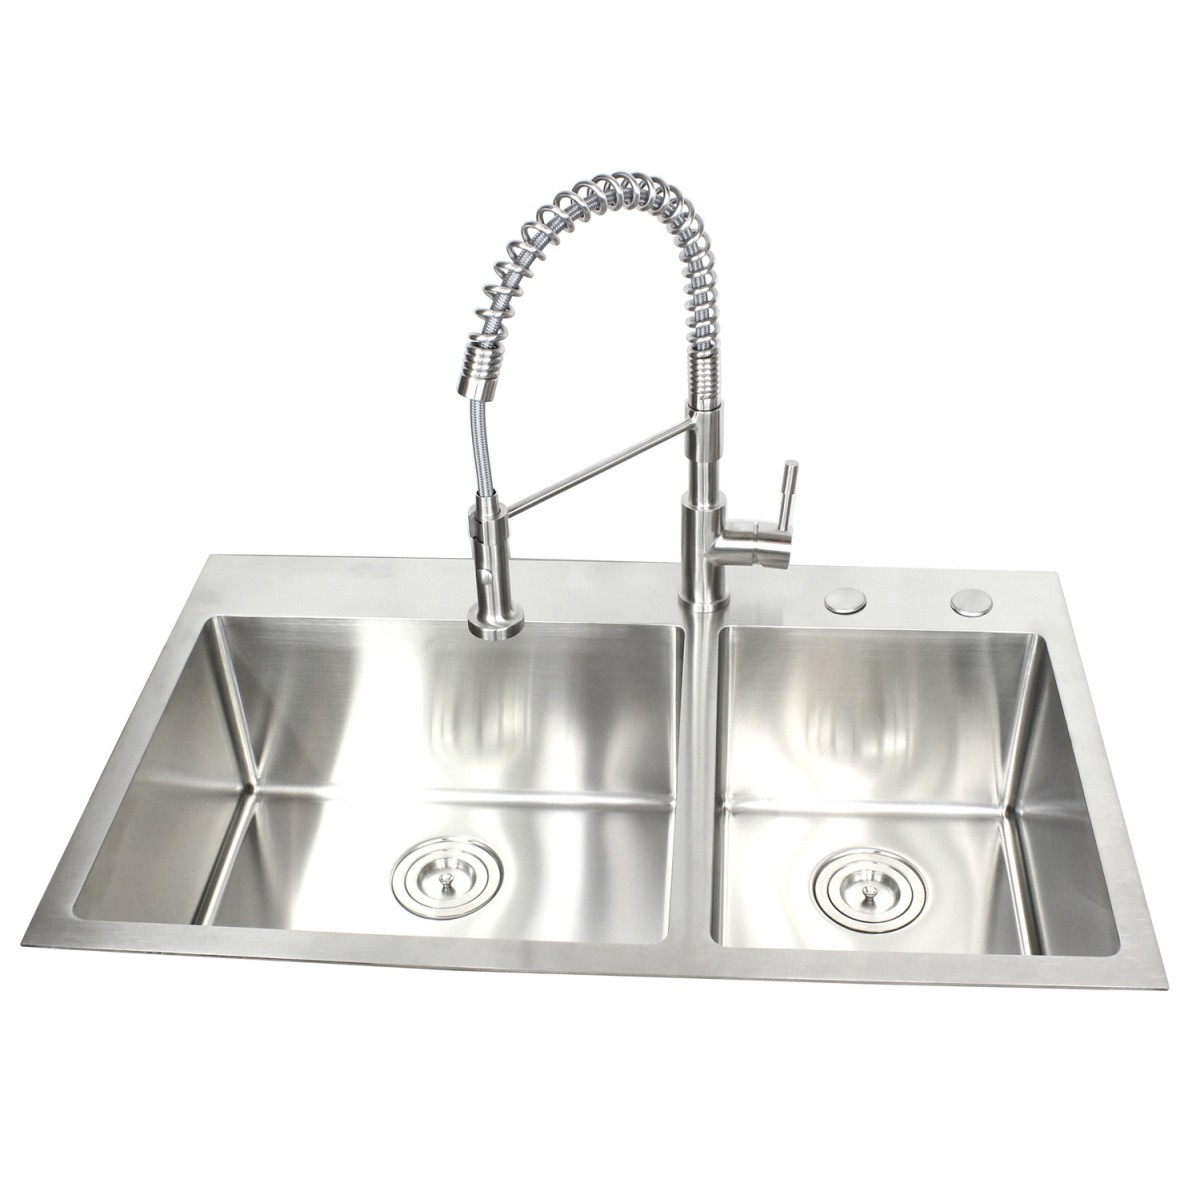 Top Mount Sink Kitchen: 36 Inch Top-Mount / Drop-In Stainless Steel 60/40 Double